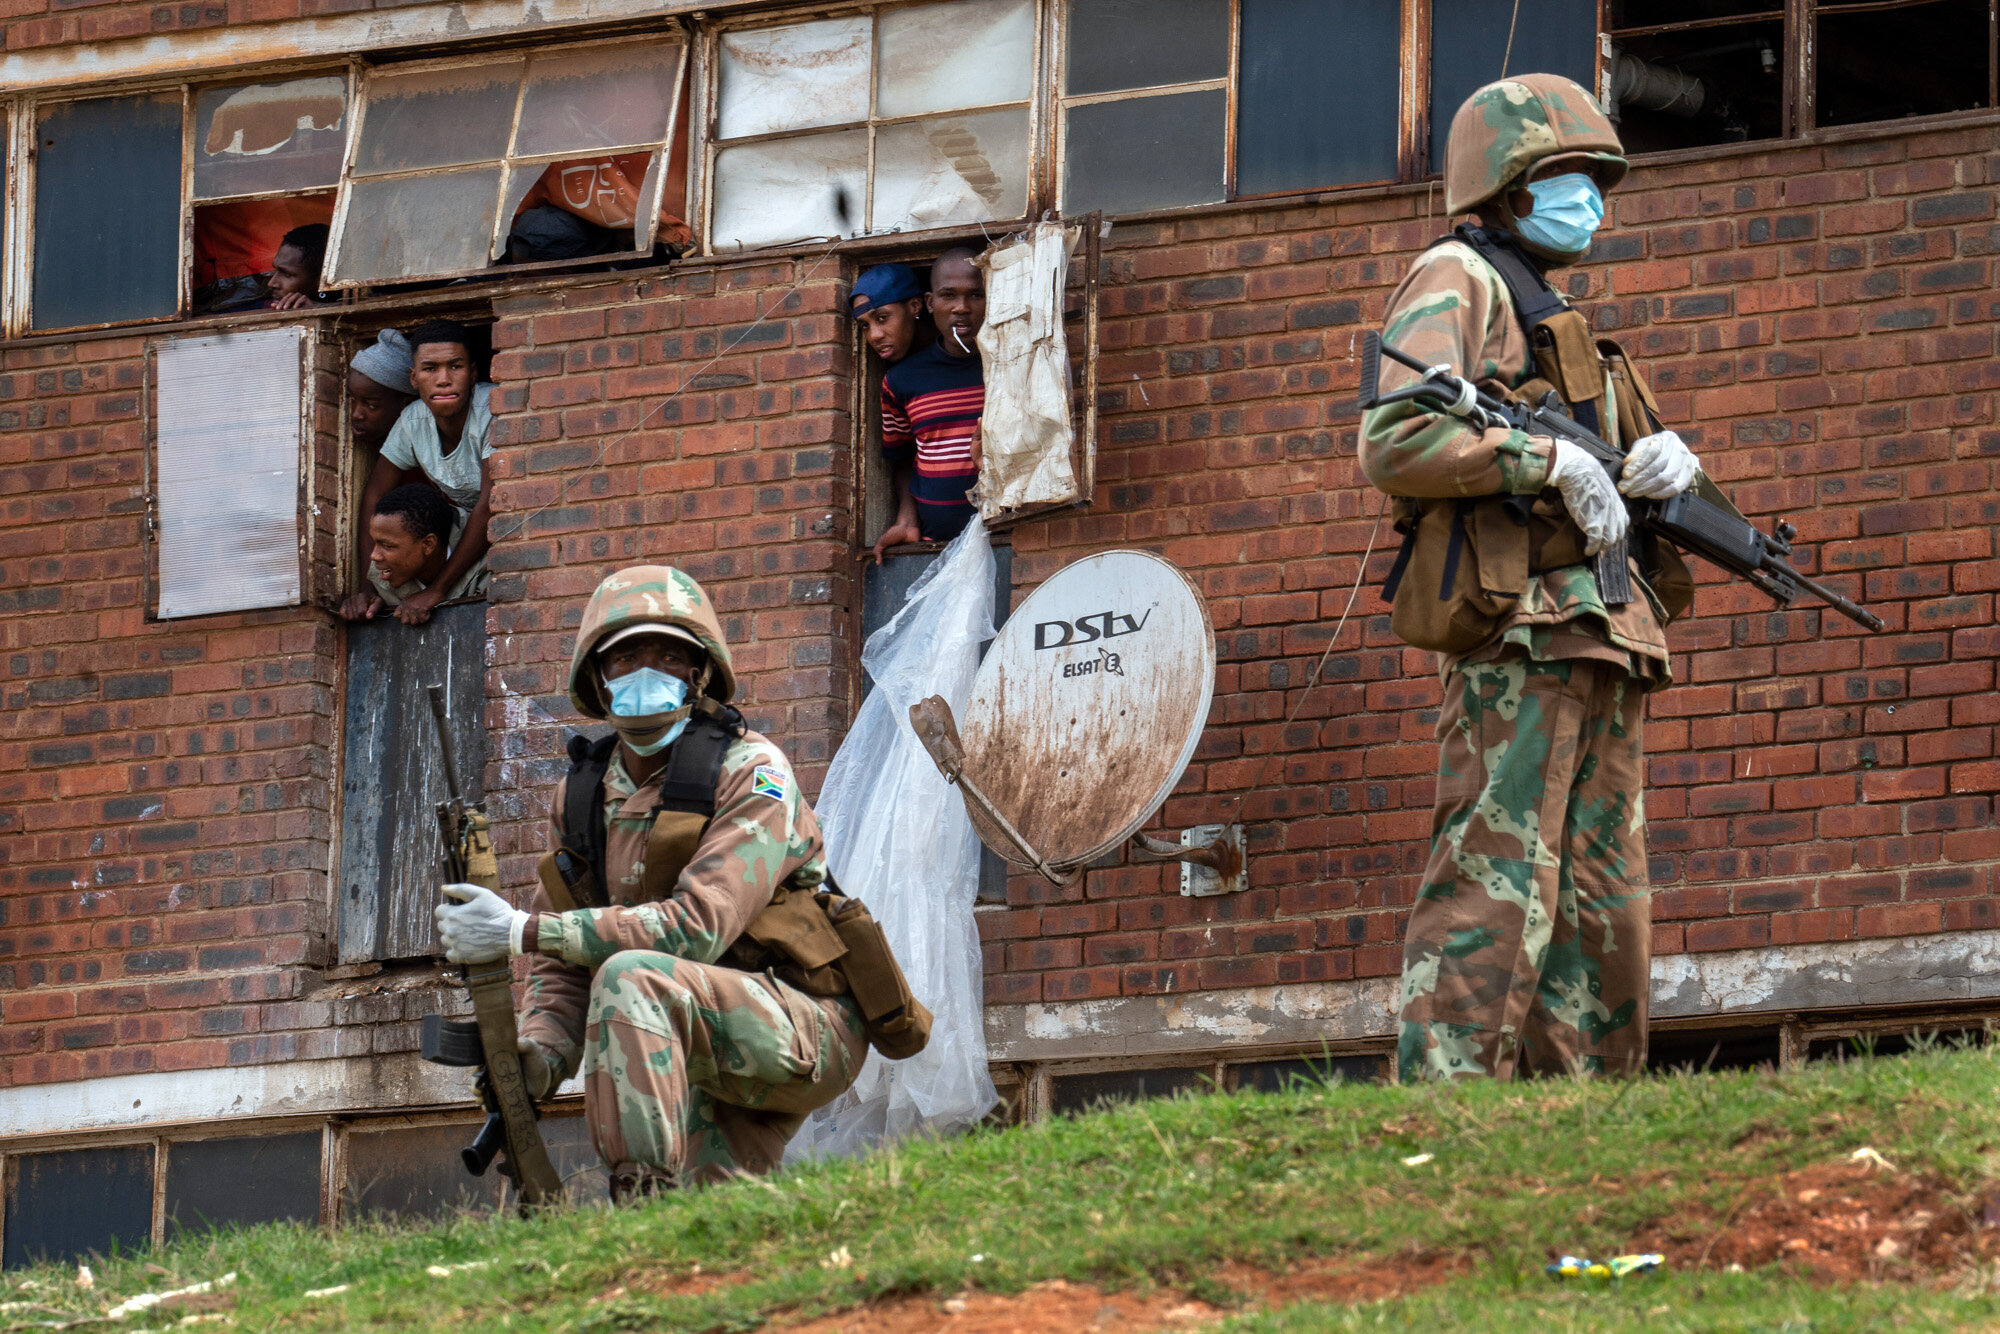 South African National Defense Forces patrol the Men's Hostel in the densely populated Alexandra township east of Johannesburg on March 28, 2020, enforcing a strict lockdown in an effort to control the spread of the coronavirus. (AP Photo/Jerome Delay)